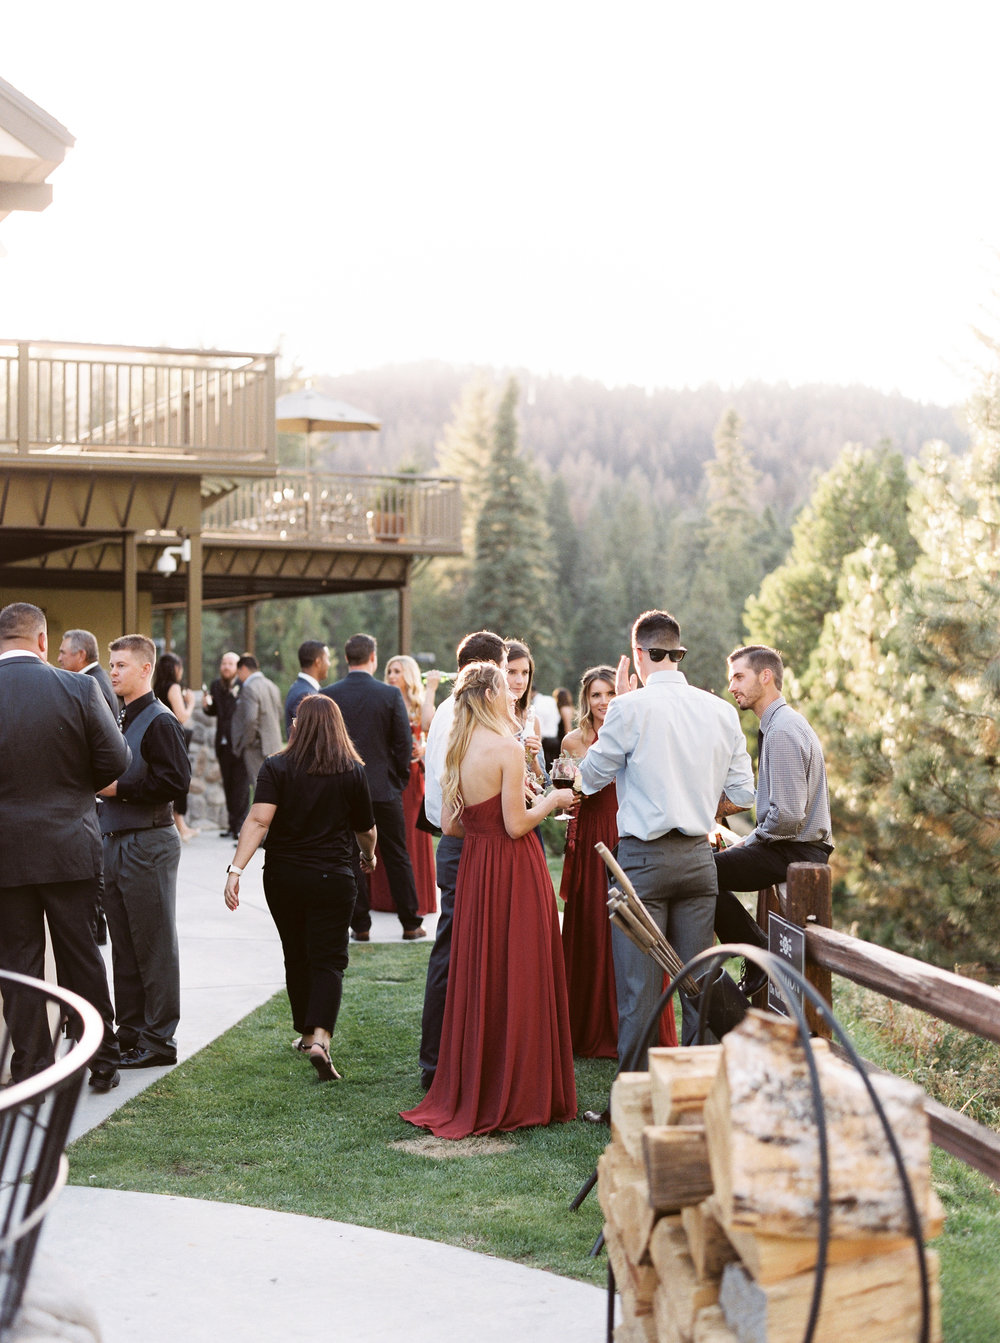 Tenaya-lodge-wedding-at-yosemite-national-park-california-50.jpg